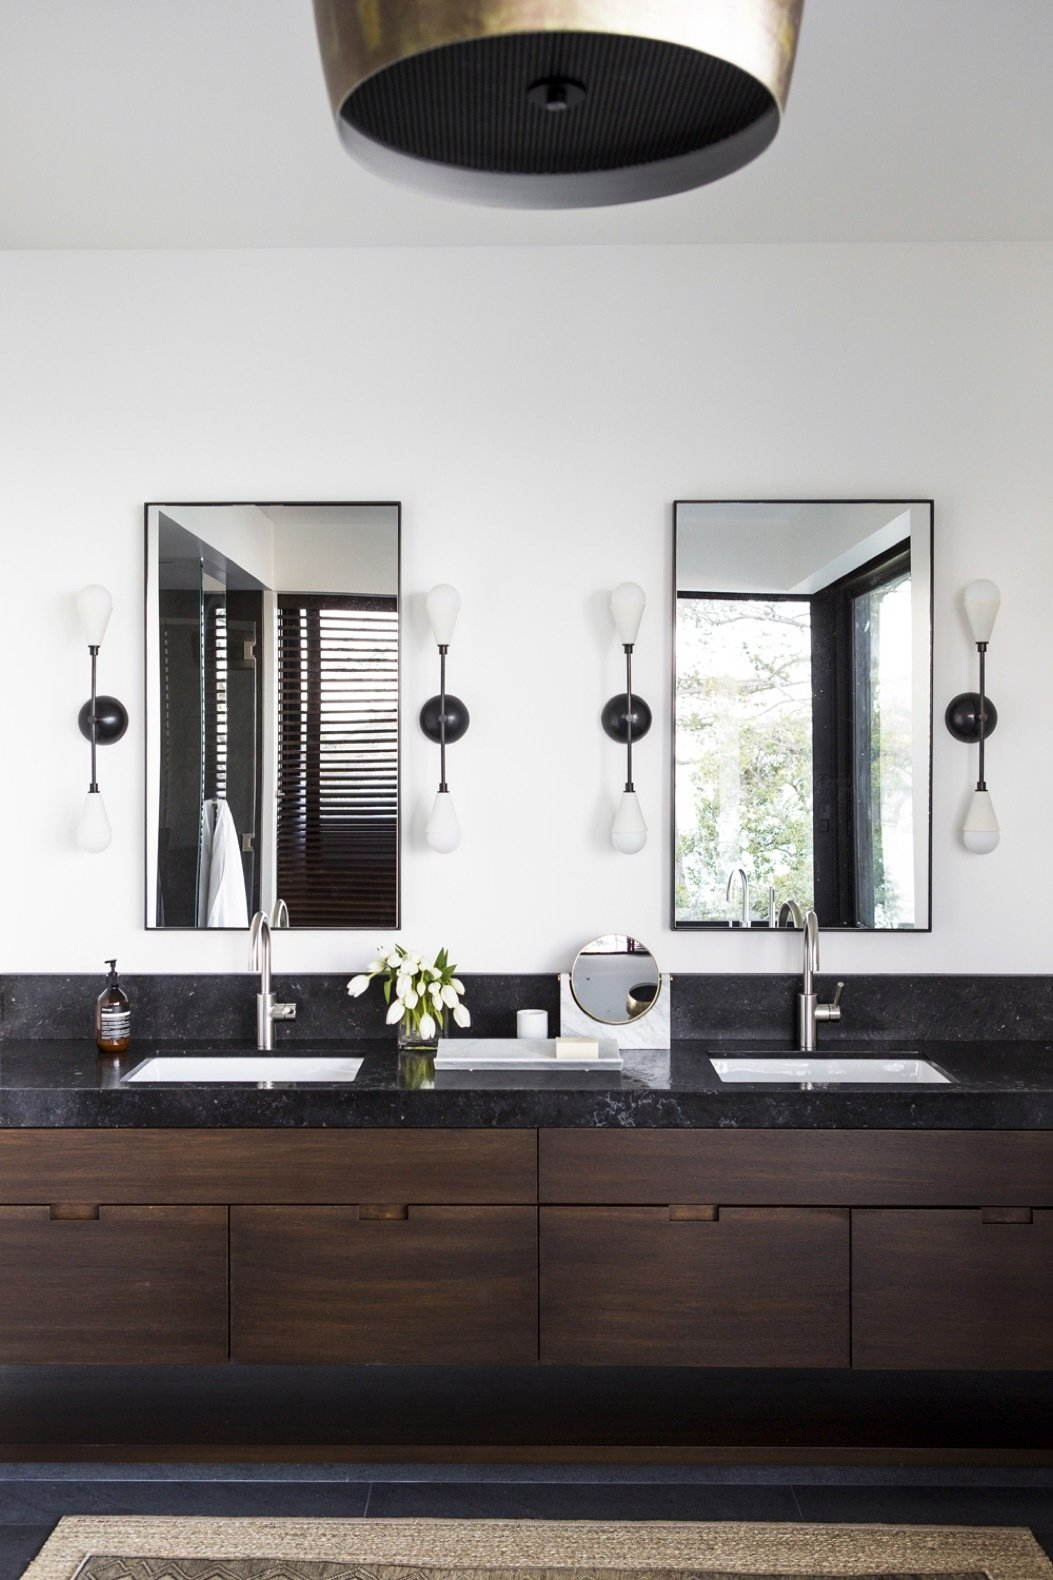 Bath Room, Pendant Lighting, Undermount Sink, Wall Lighting, and Granite Counter The master bath is fitted out with custom teak cabinetry topped with Aged Petit Granit counters.  Photo 10 of 14 in An Energy-Conscious Home Gets Woven Into a Waterfront Landscape